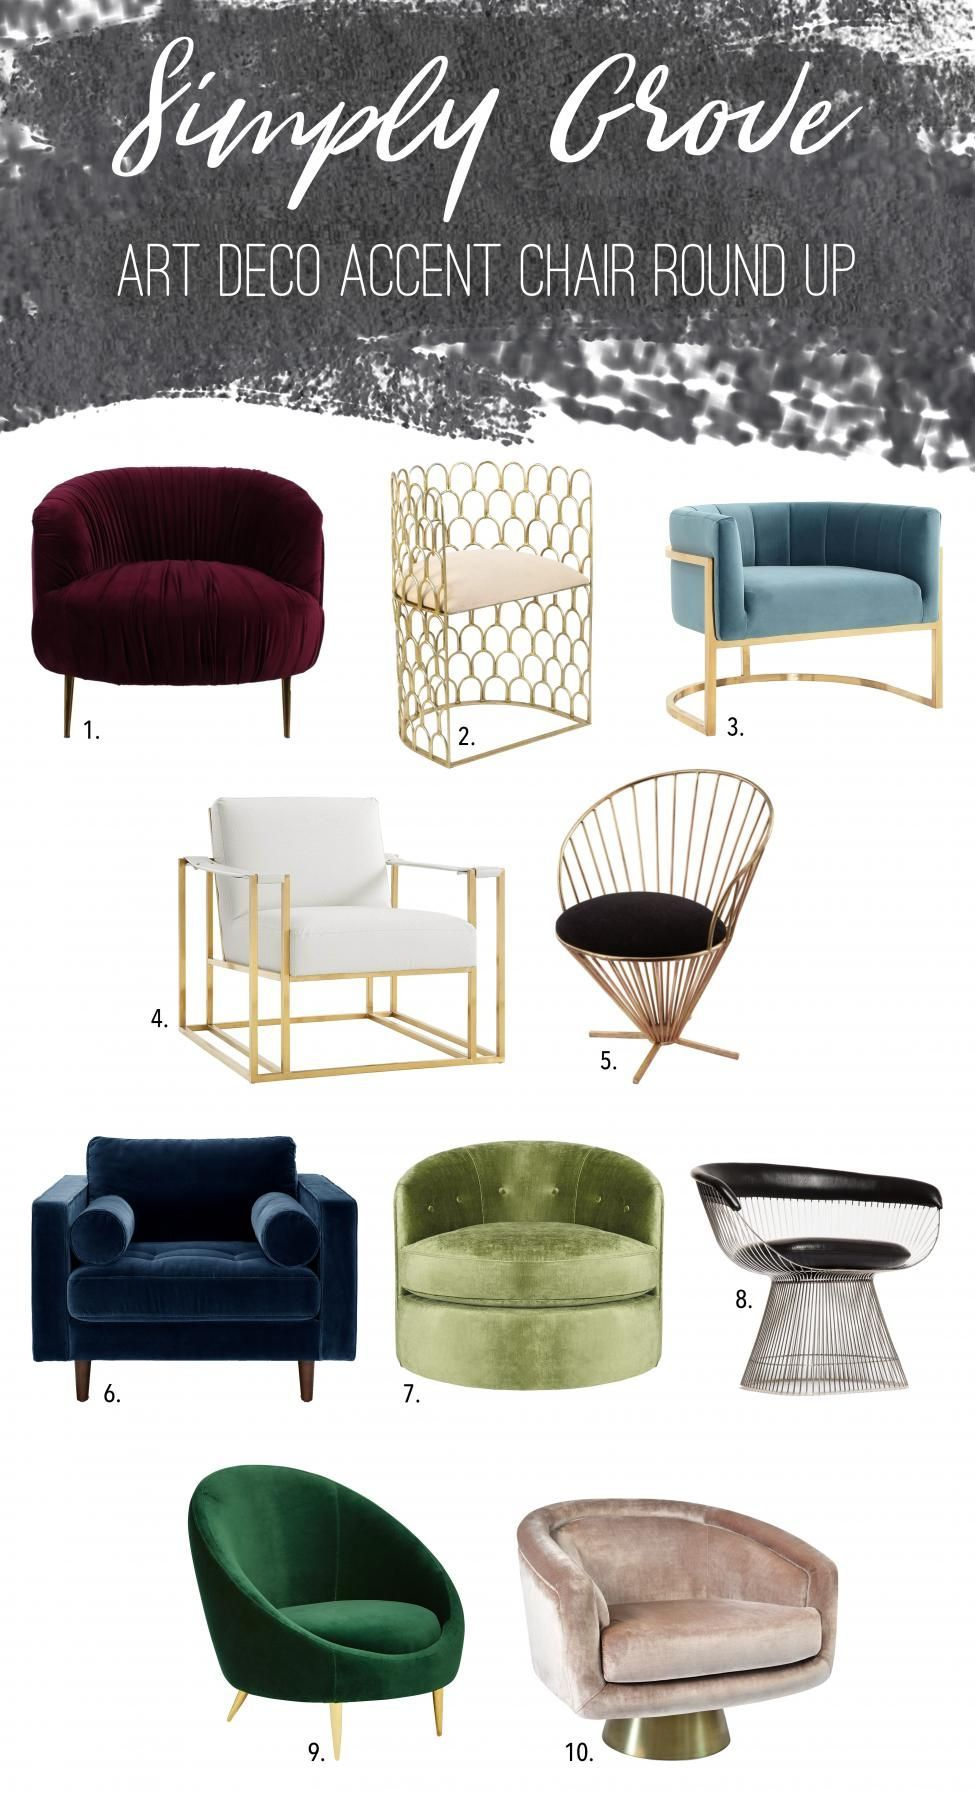 Art Deco Accent Chair Round Up Via Simply Grove Artdecointerior